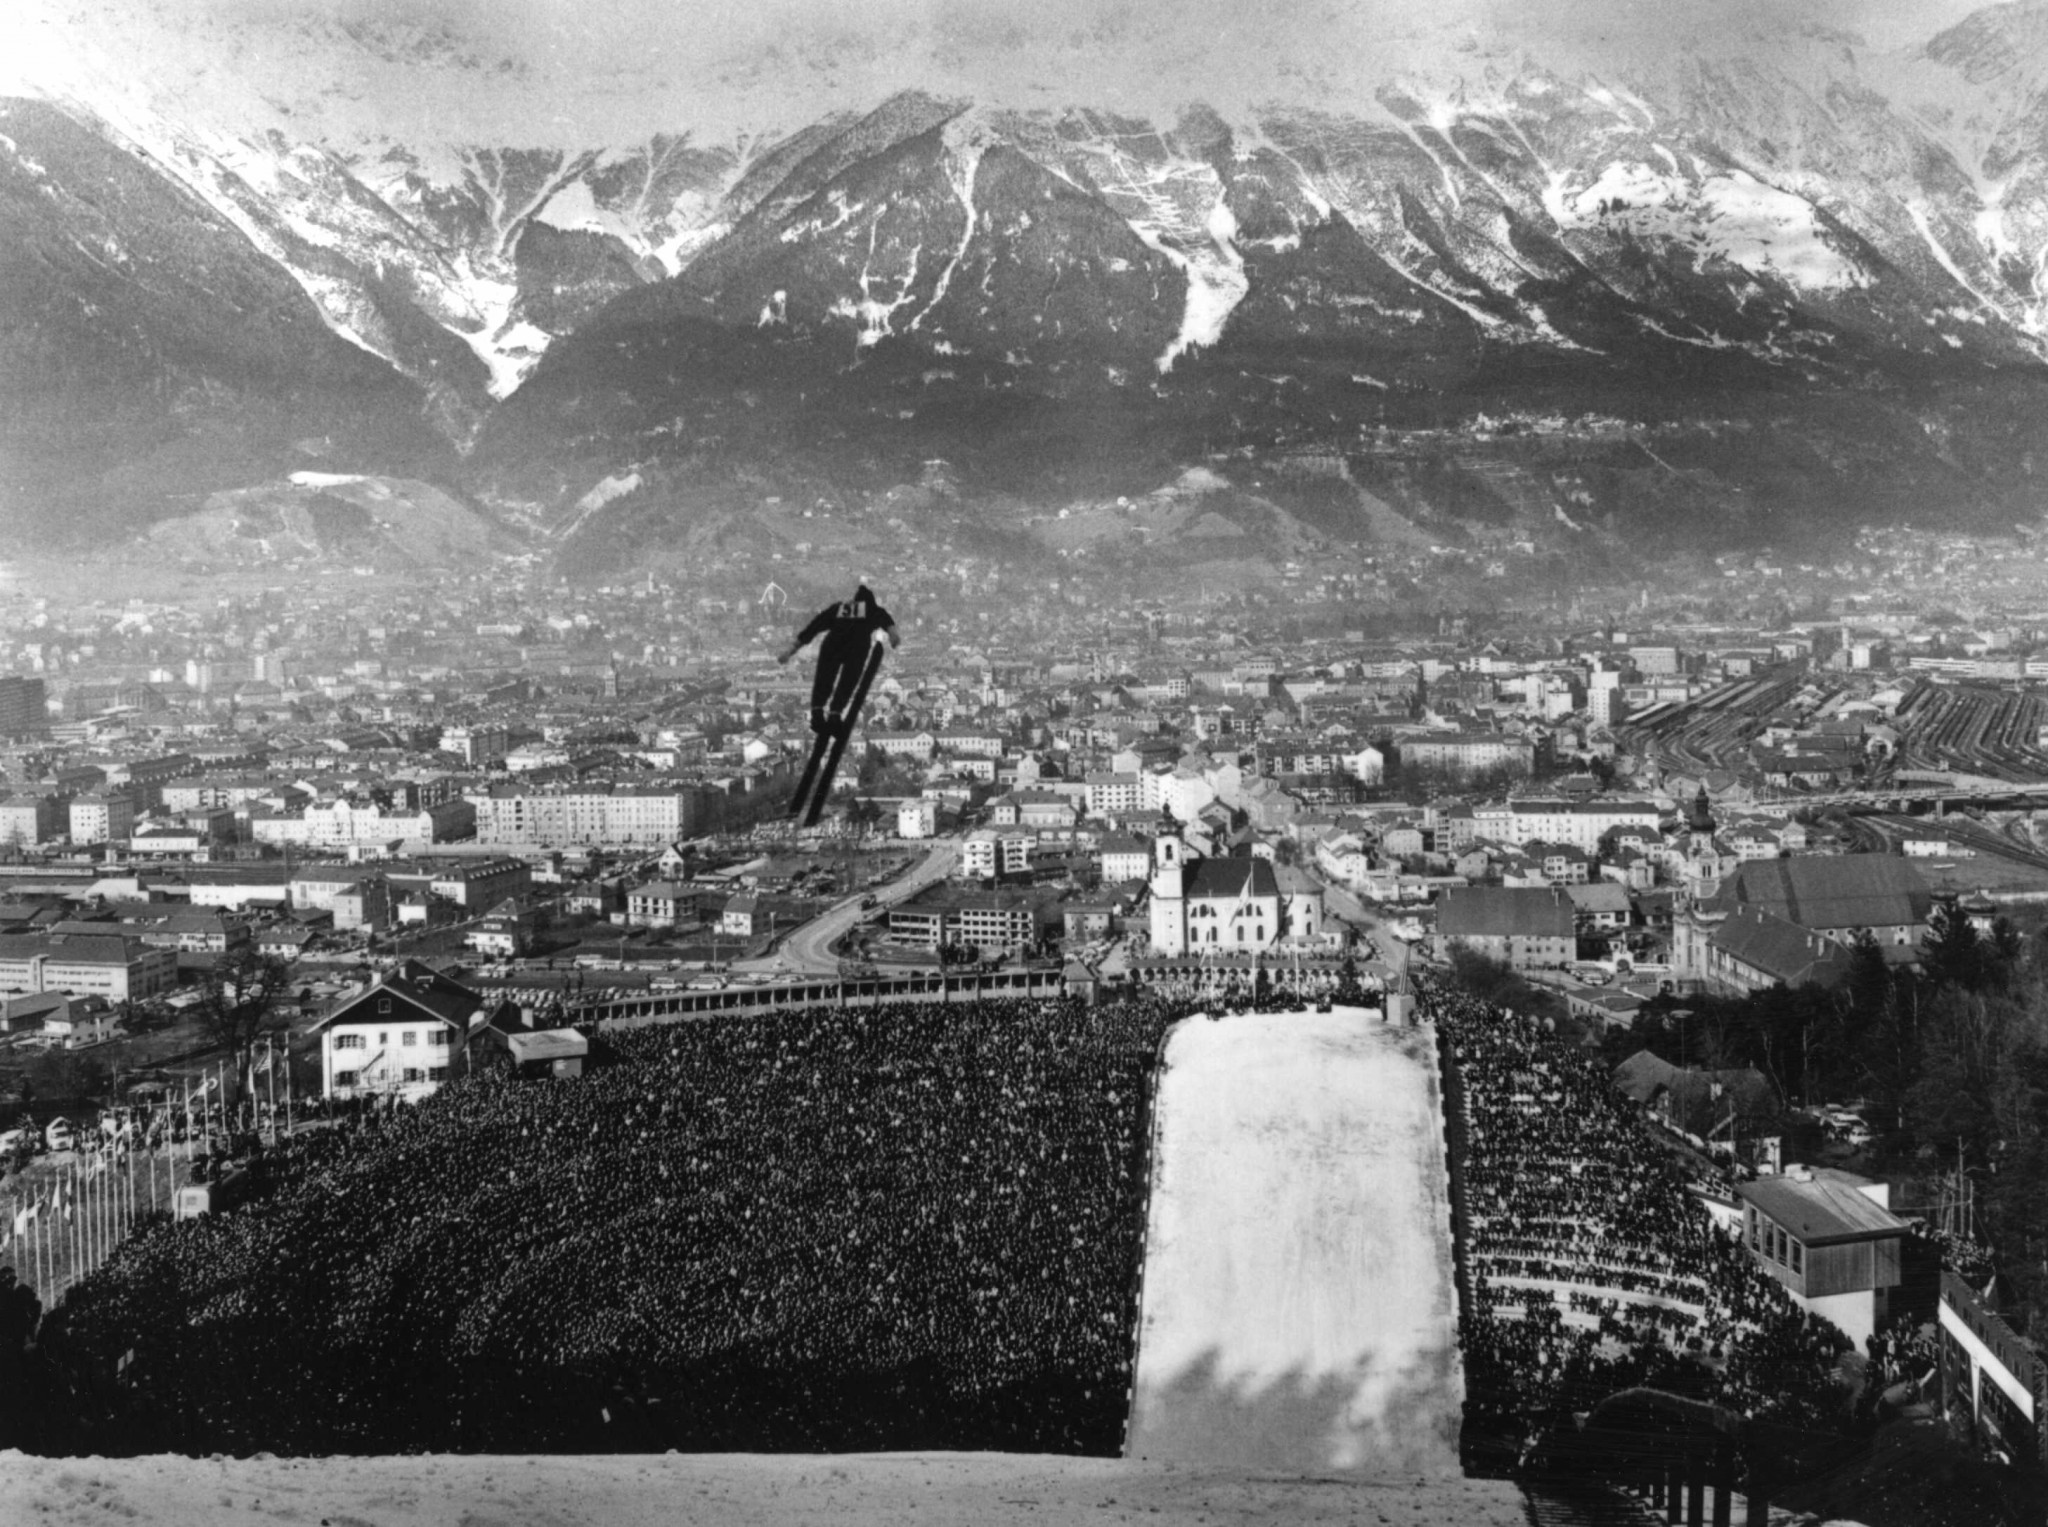 The Winter Olympic Games were on an upward curve after the 1964 edition in Innsbruck ©Getty Images